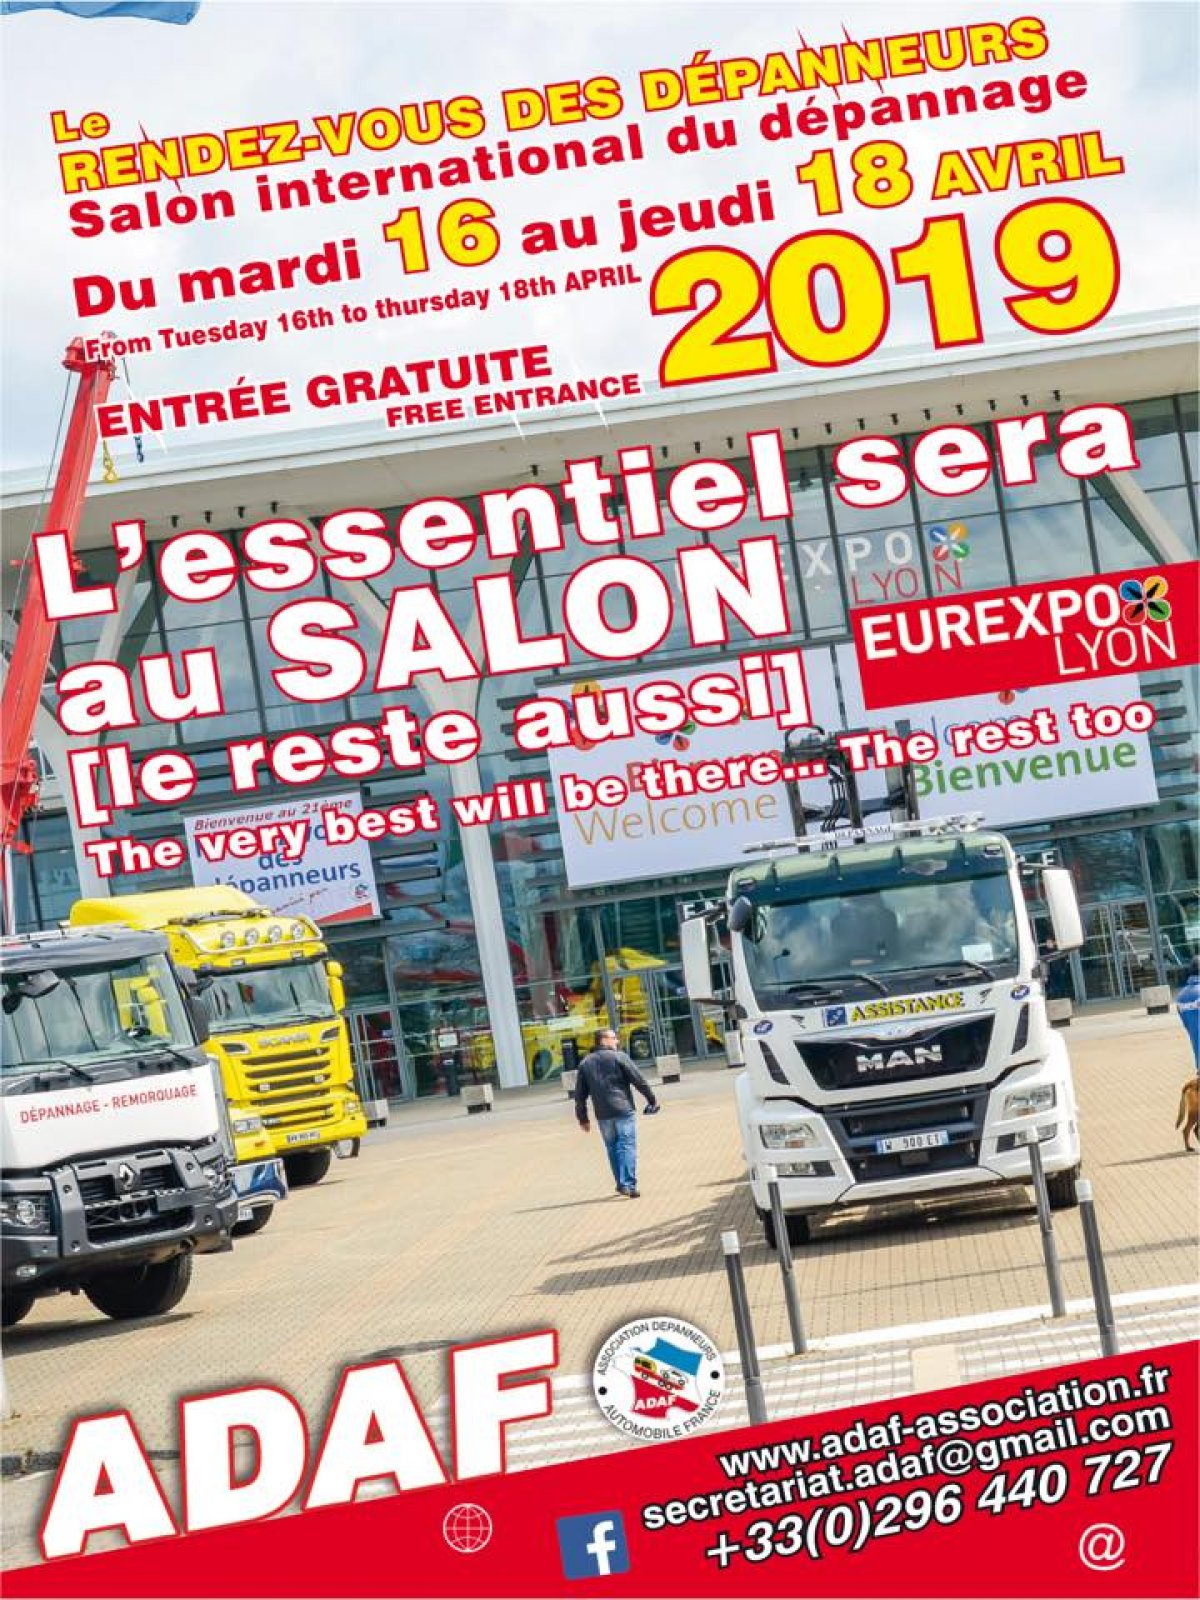 Tow show at lyon from 16 to 18 of april 2019